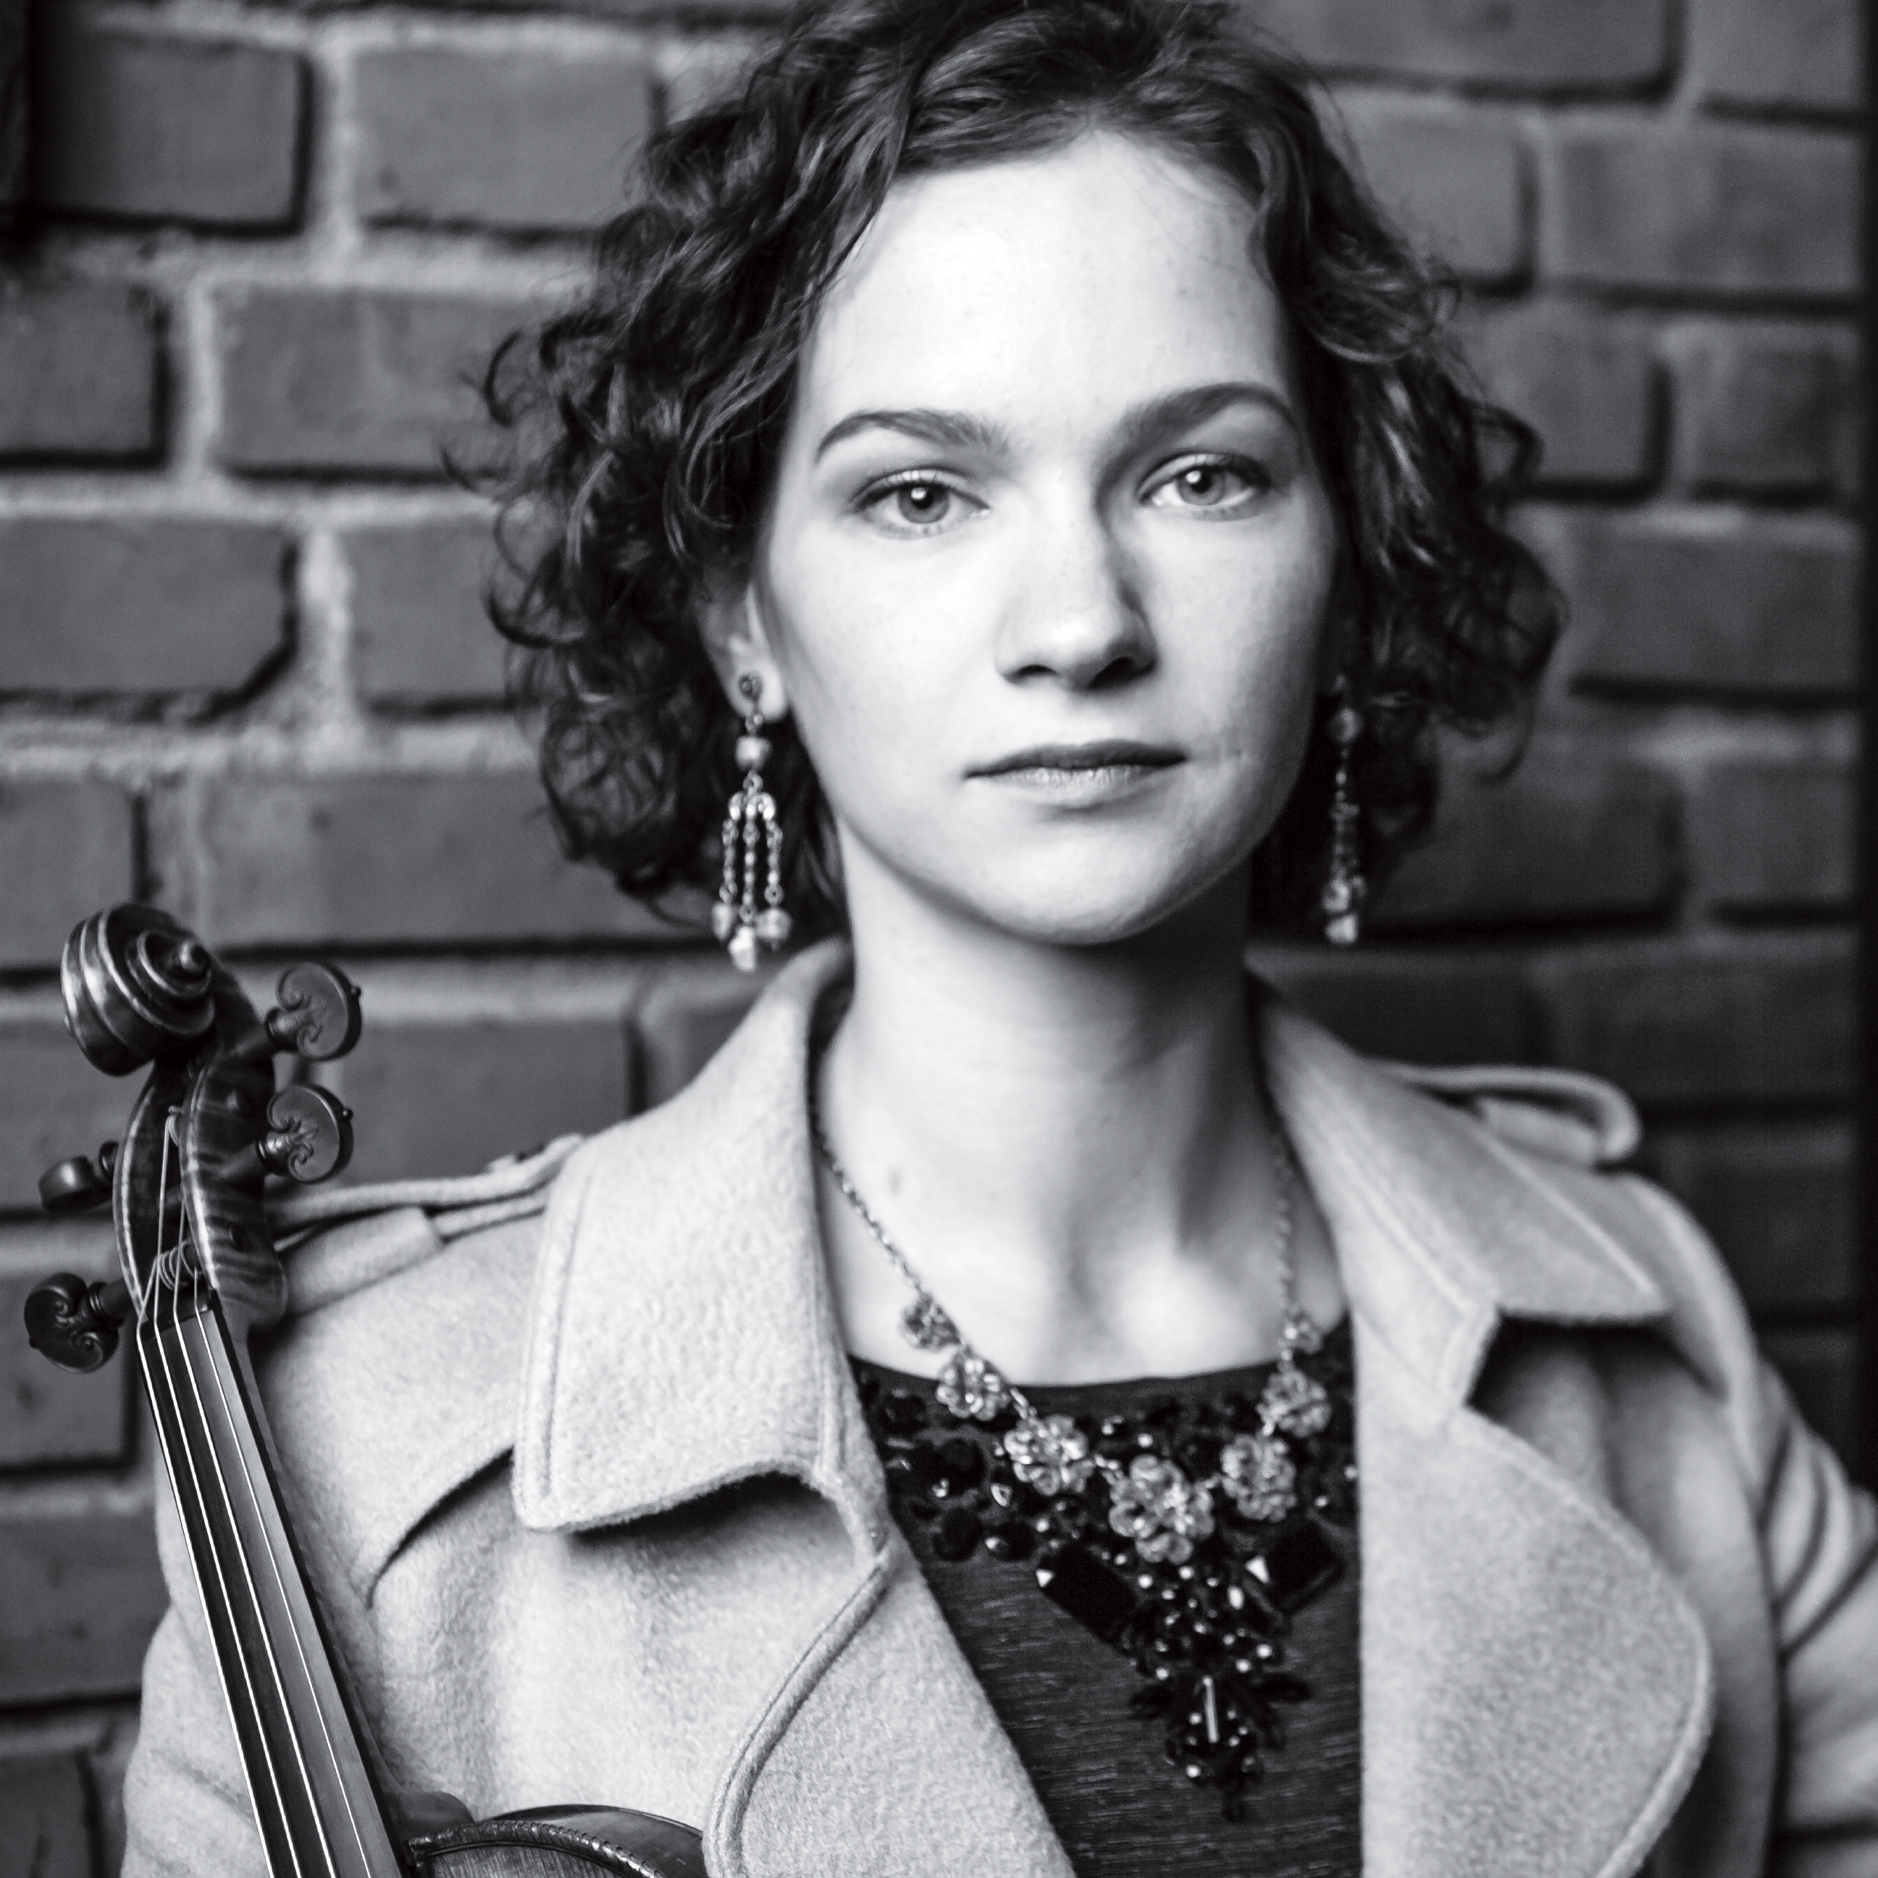 1000+ images about Hilary Hahn on Pinterest Hilary Hahn